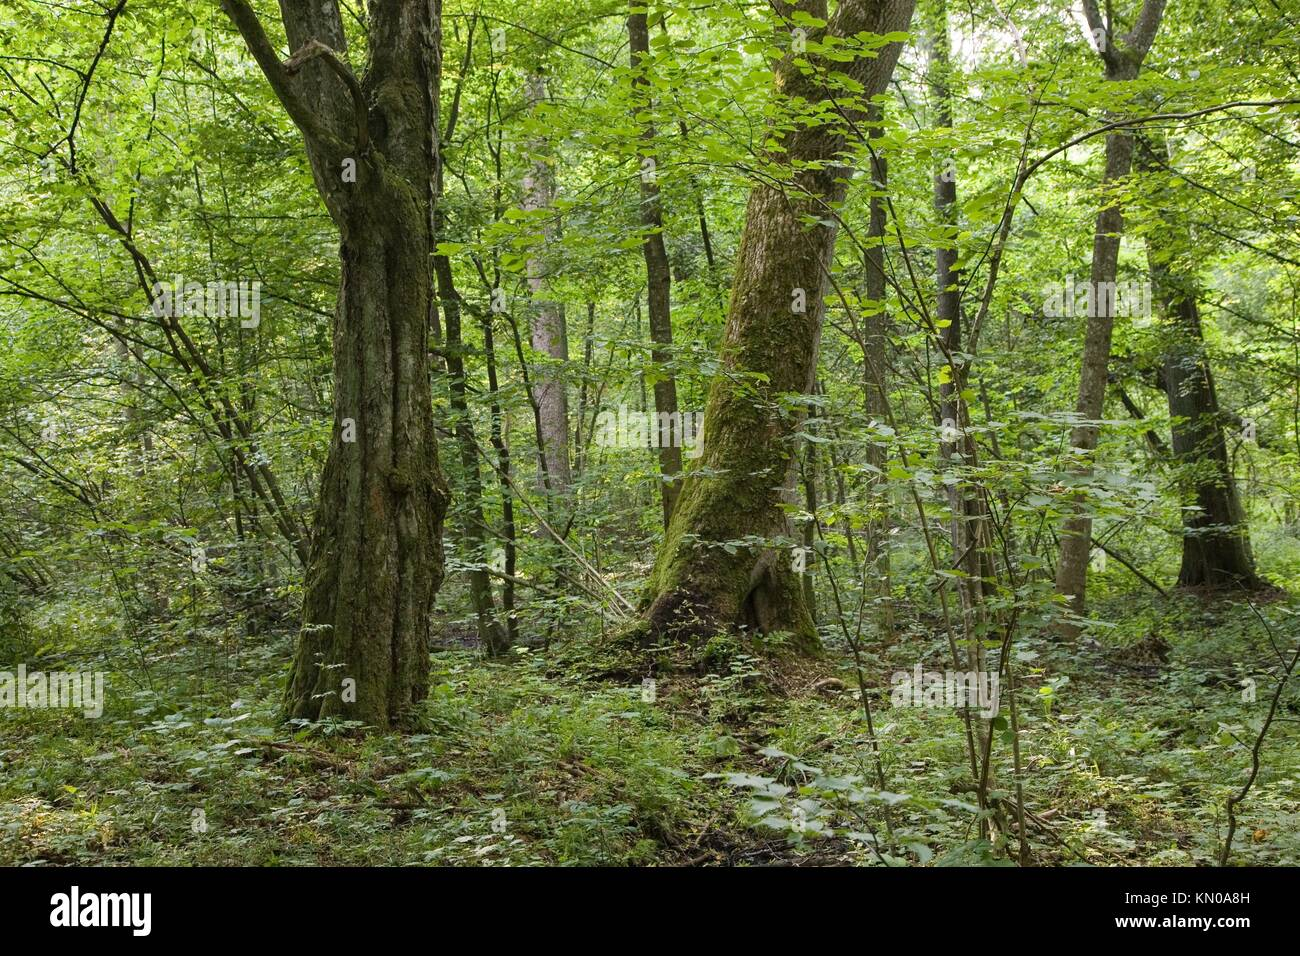 Two old Hornbeams carpinus betulus inside forest against young fresh green trees, Poland, Podlasie Province - Stock Image